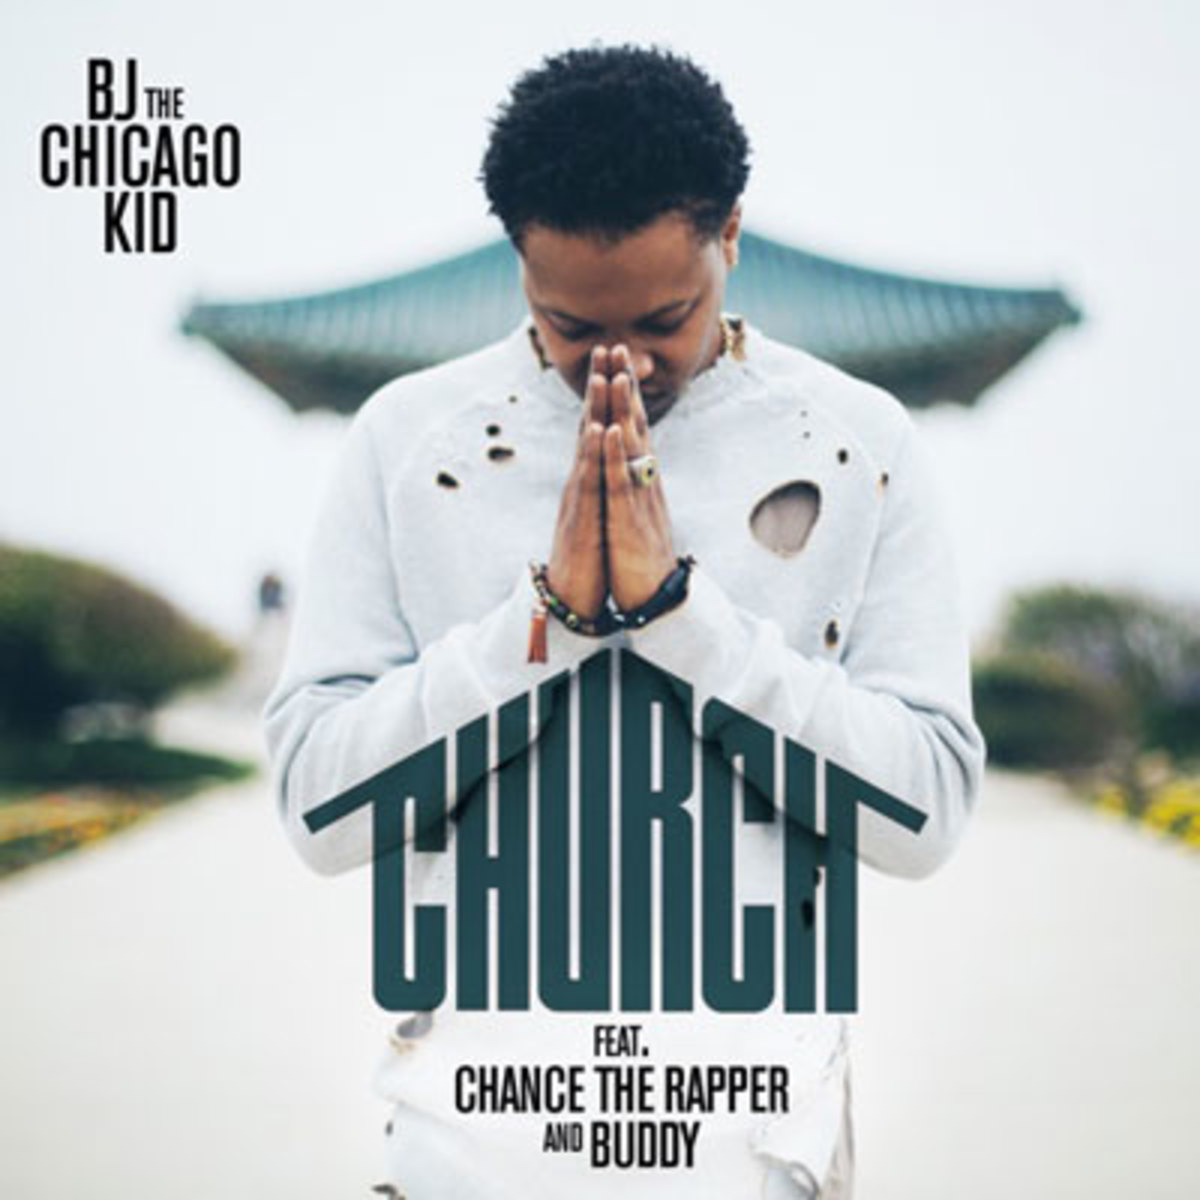 bj-the-chicago-kid-church.jpg